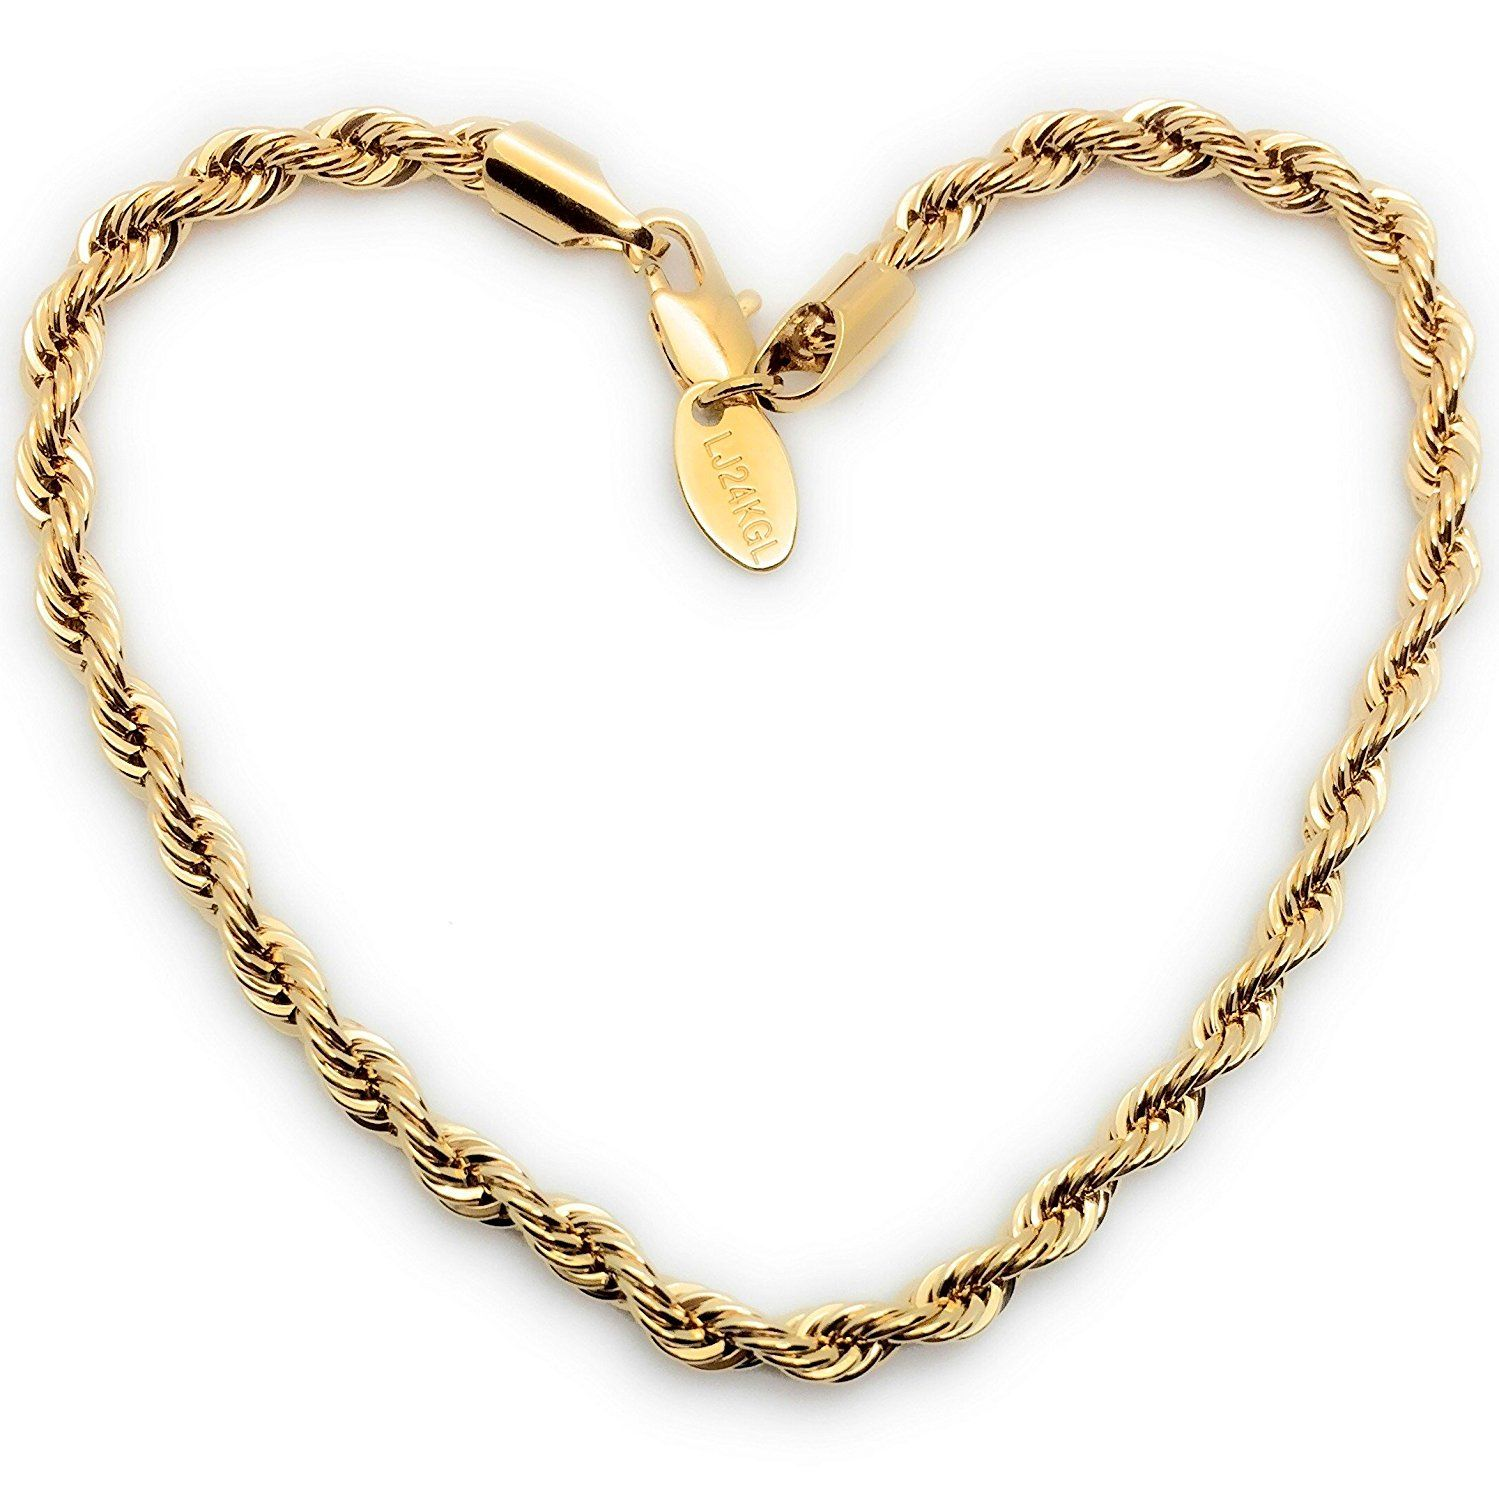 Lifetime jewelry rope bracelet mm round k gold with inlaid